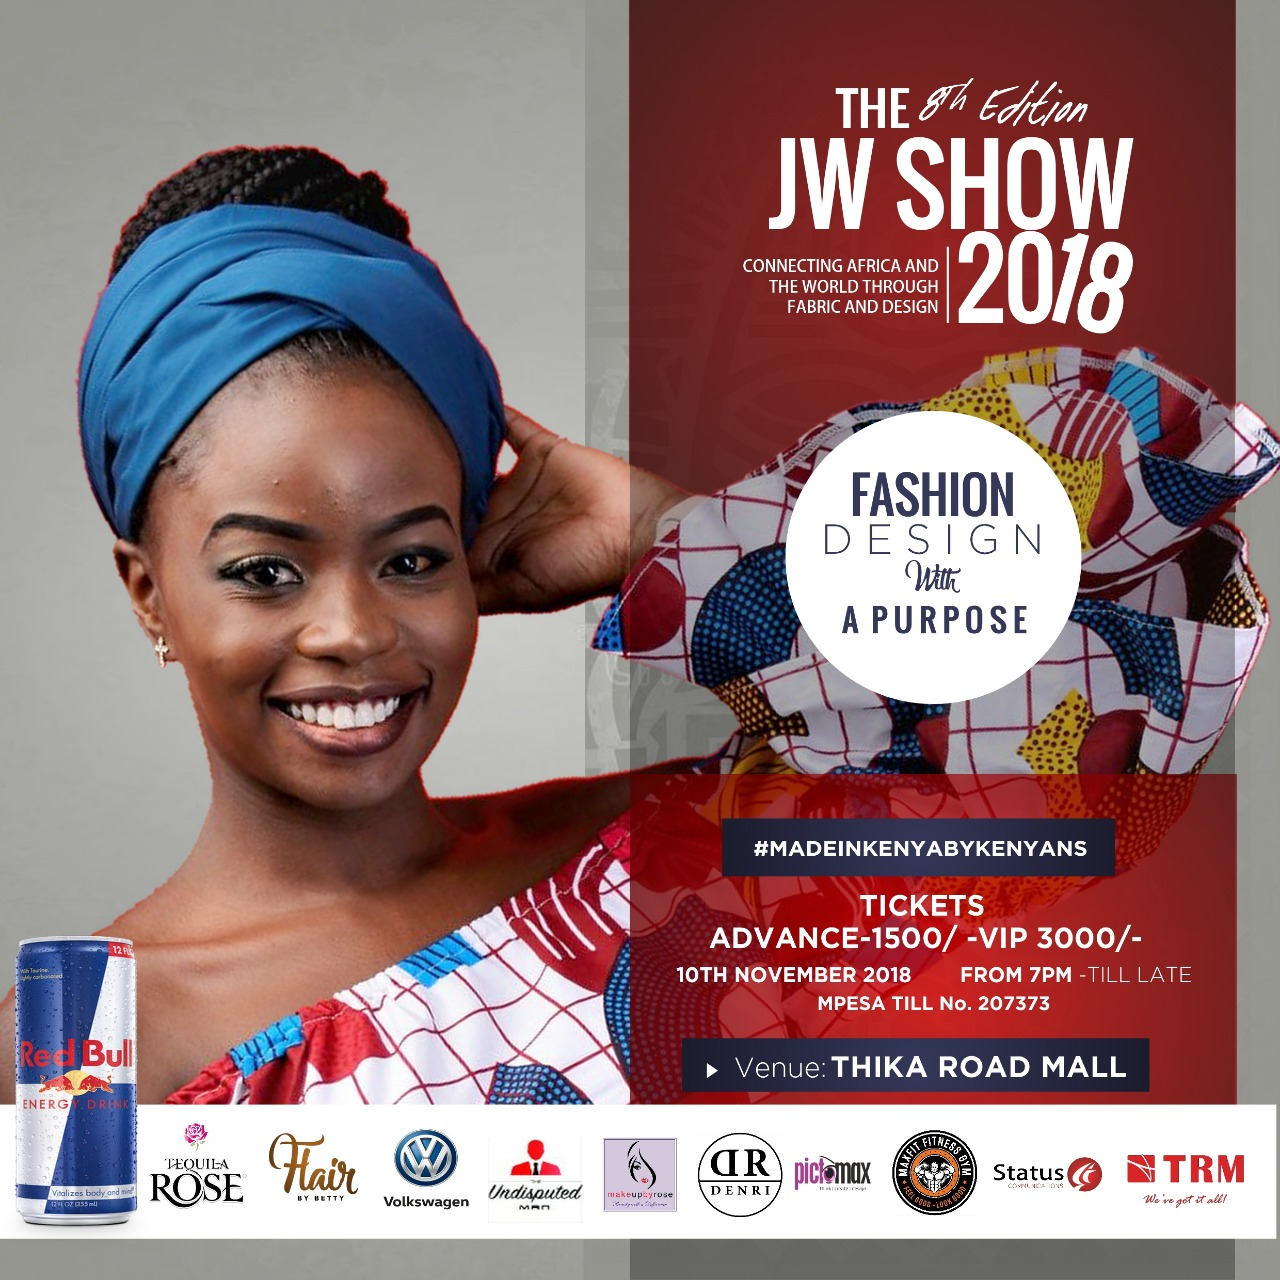 THE 8TH EDITION OF THE JW SHOW 2018 WITH A STYLE- STUDDED FASHION SHOW